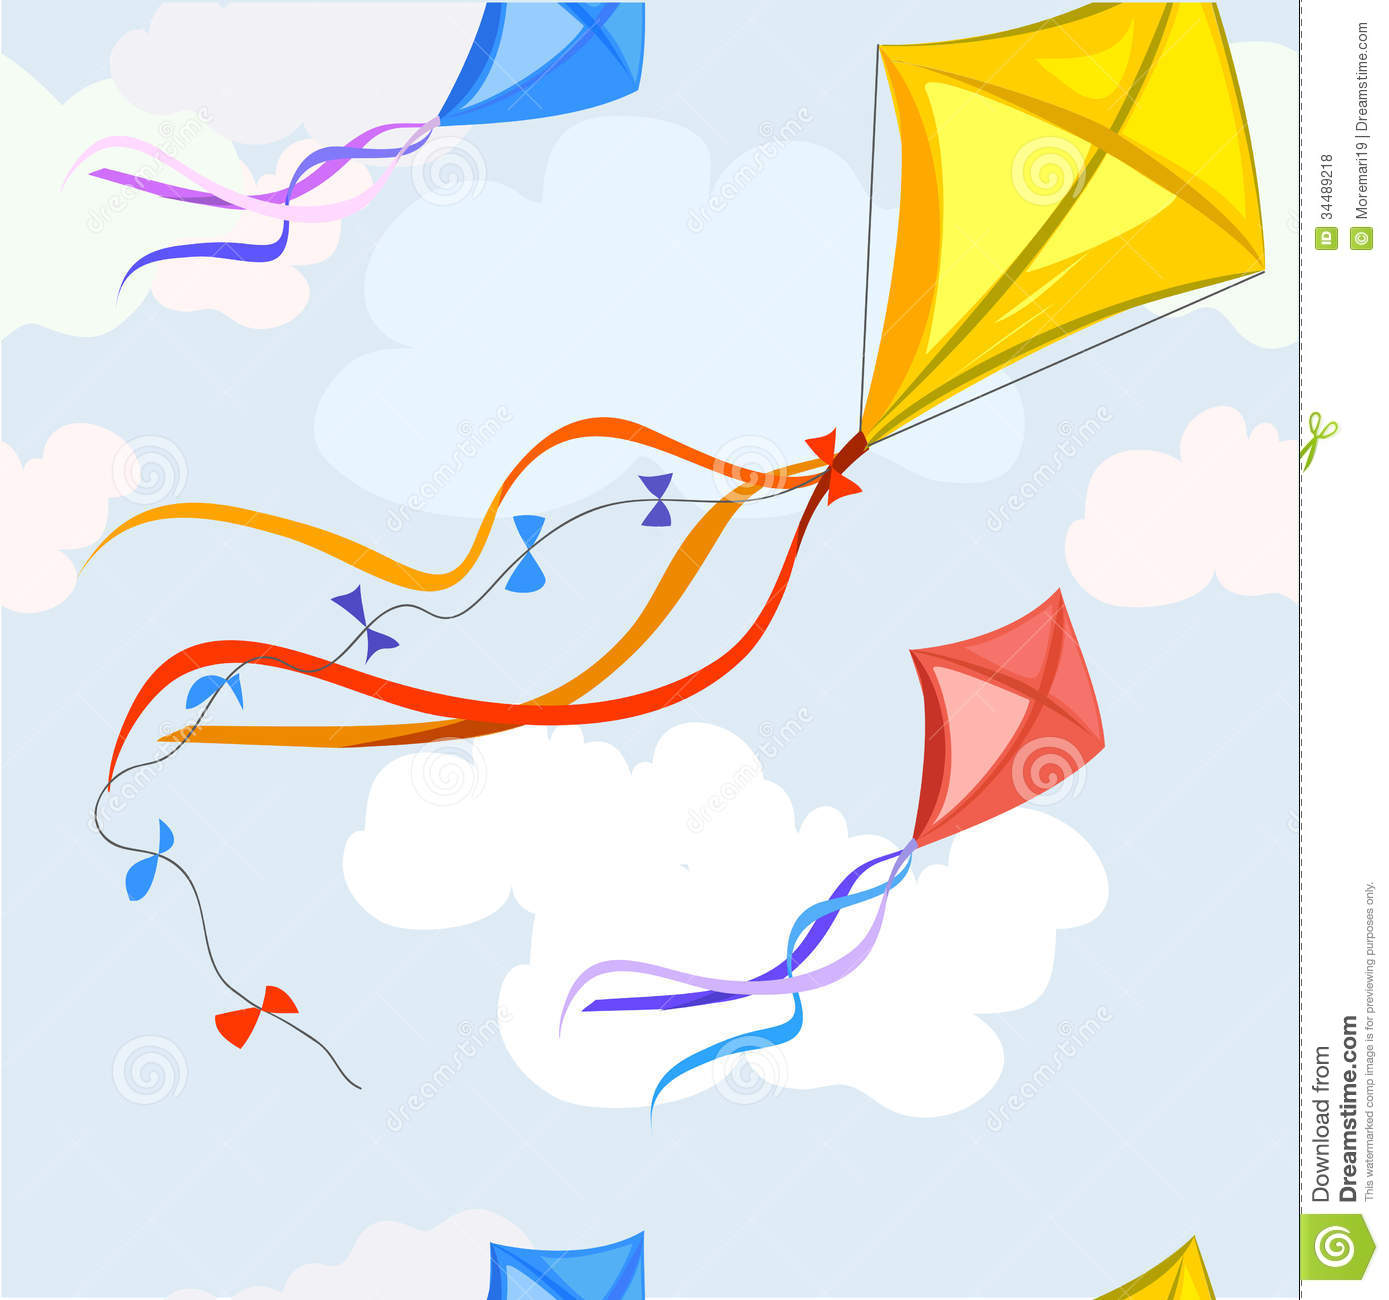 Kite Background Background with a kite